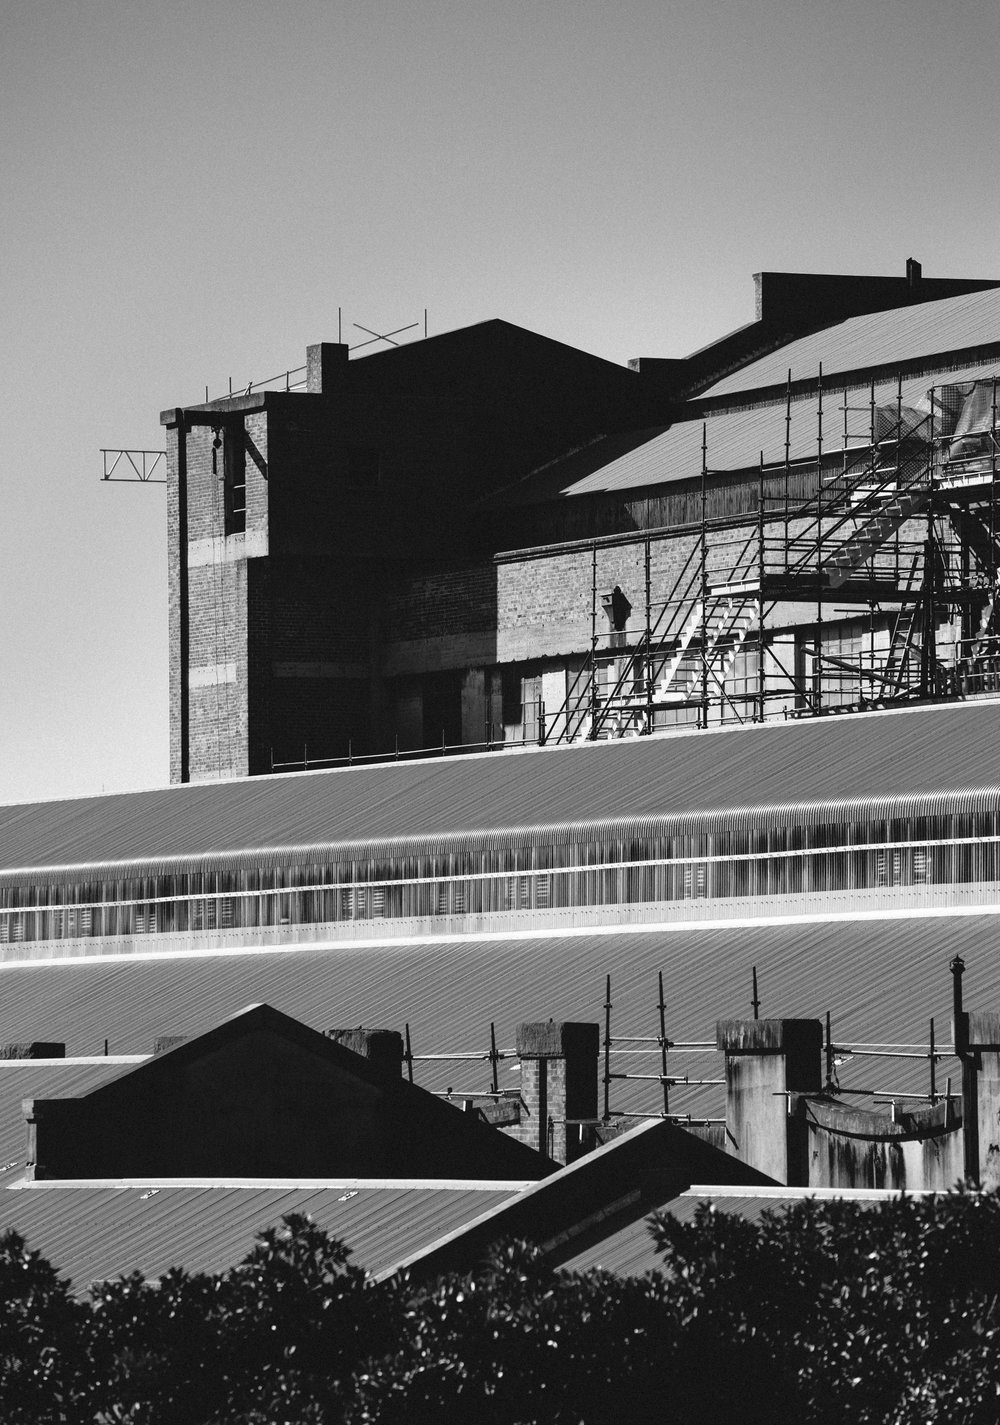 mackintosh_photography_industrial_architecture_14.jpg